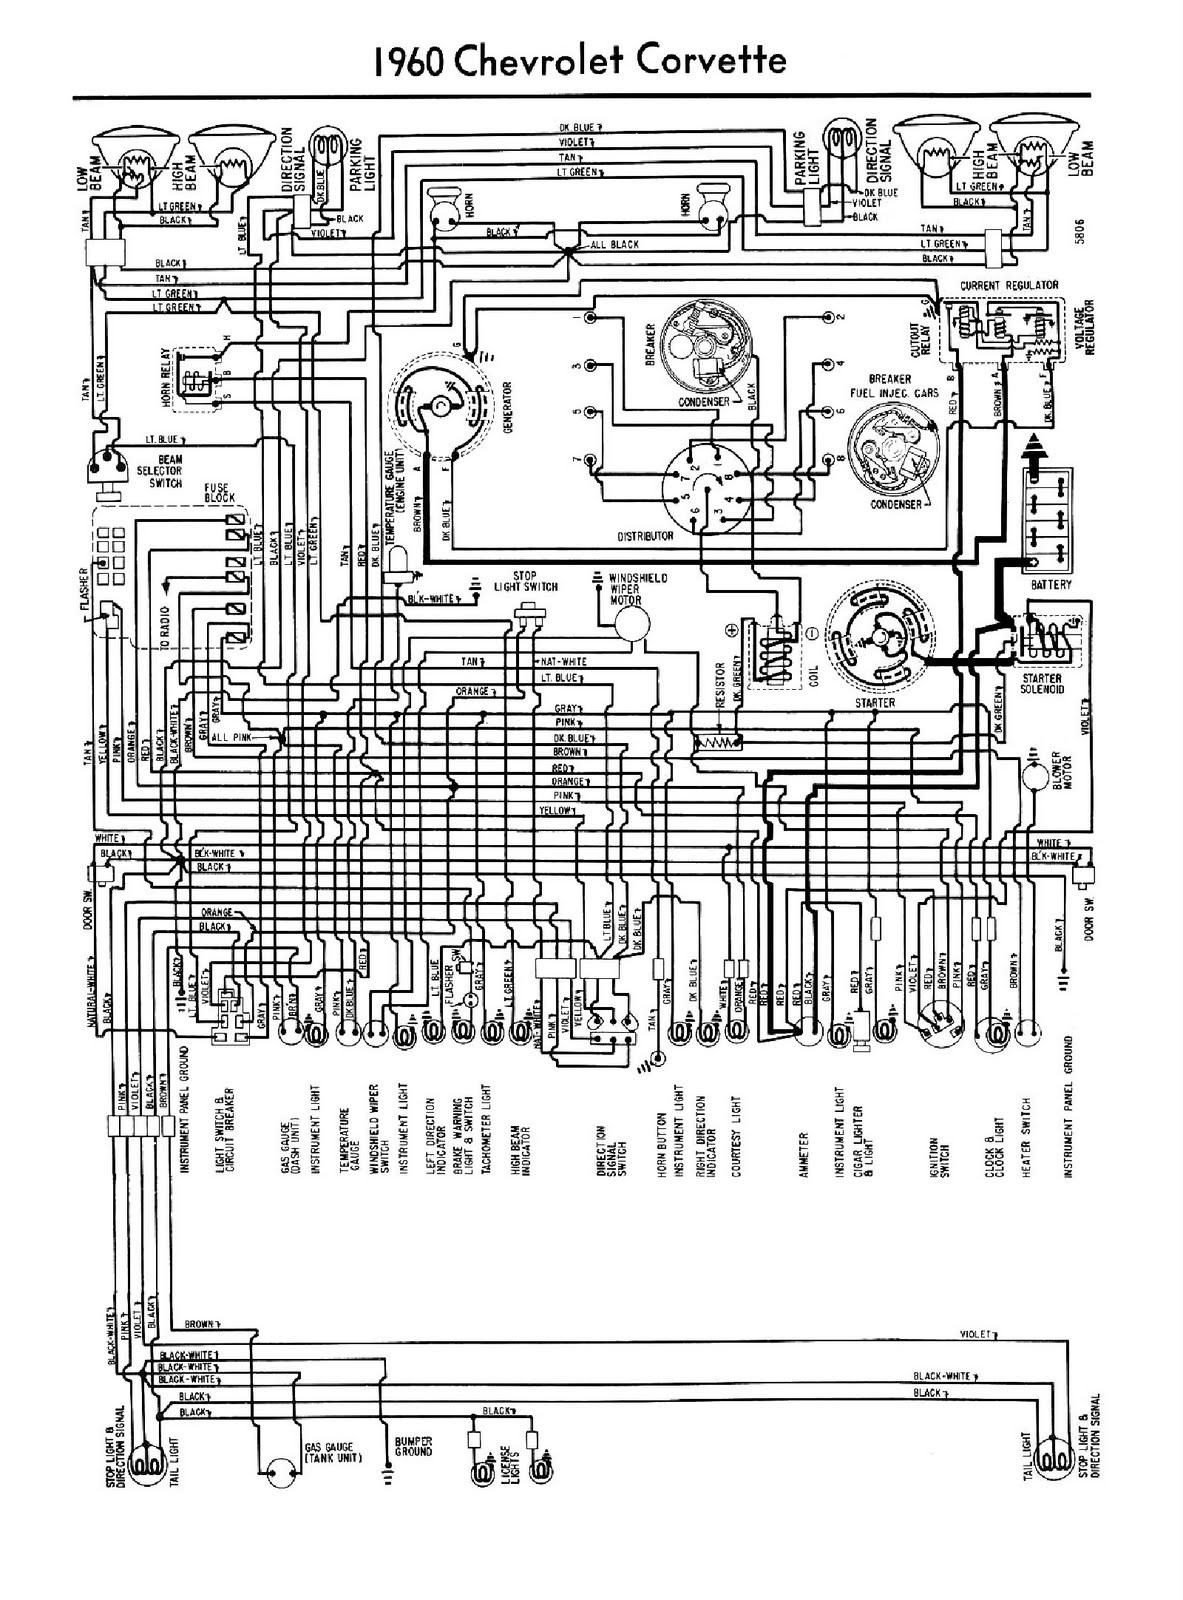 hight resolution of 1975 corvette ignition wiring diagram wiring diagrams rh 90 treatchildtrauma de 76 corvette wiring diagram 1984